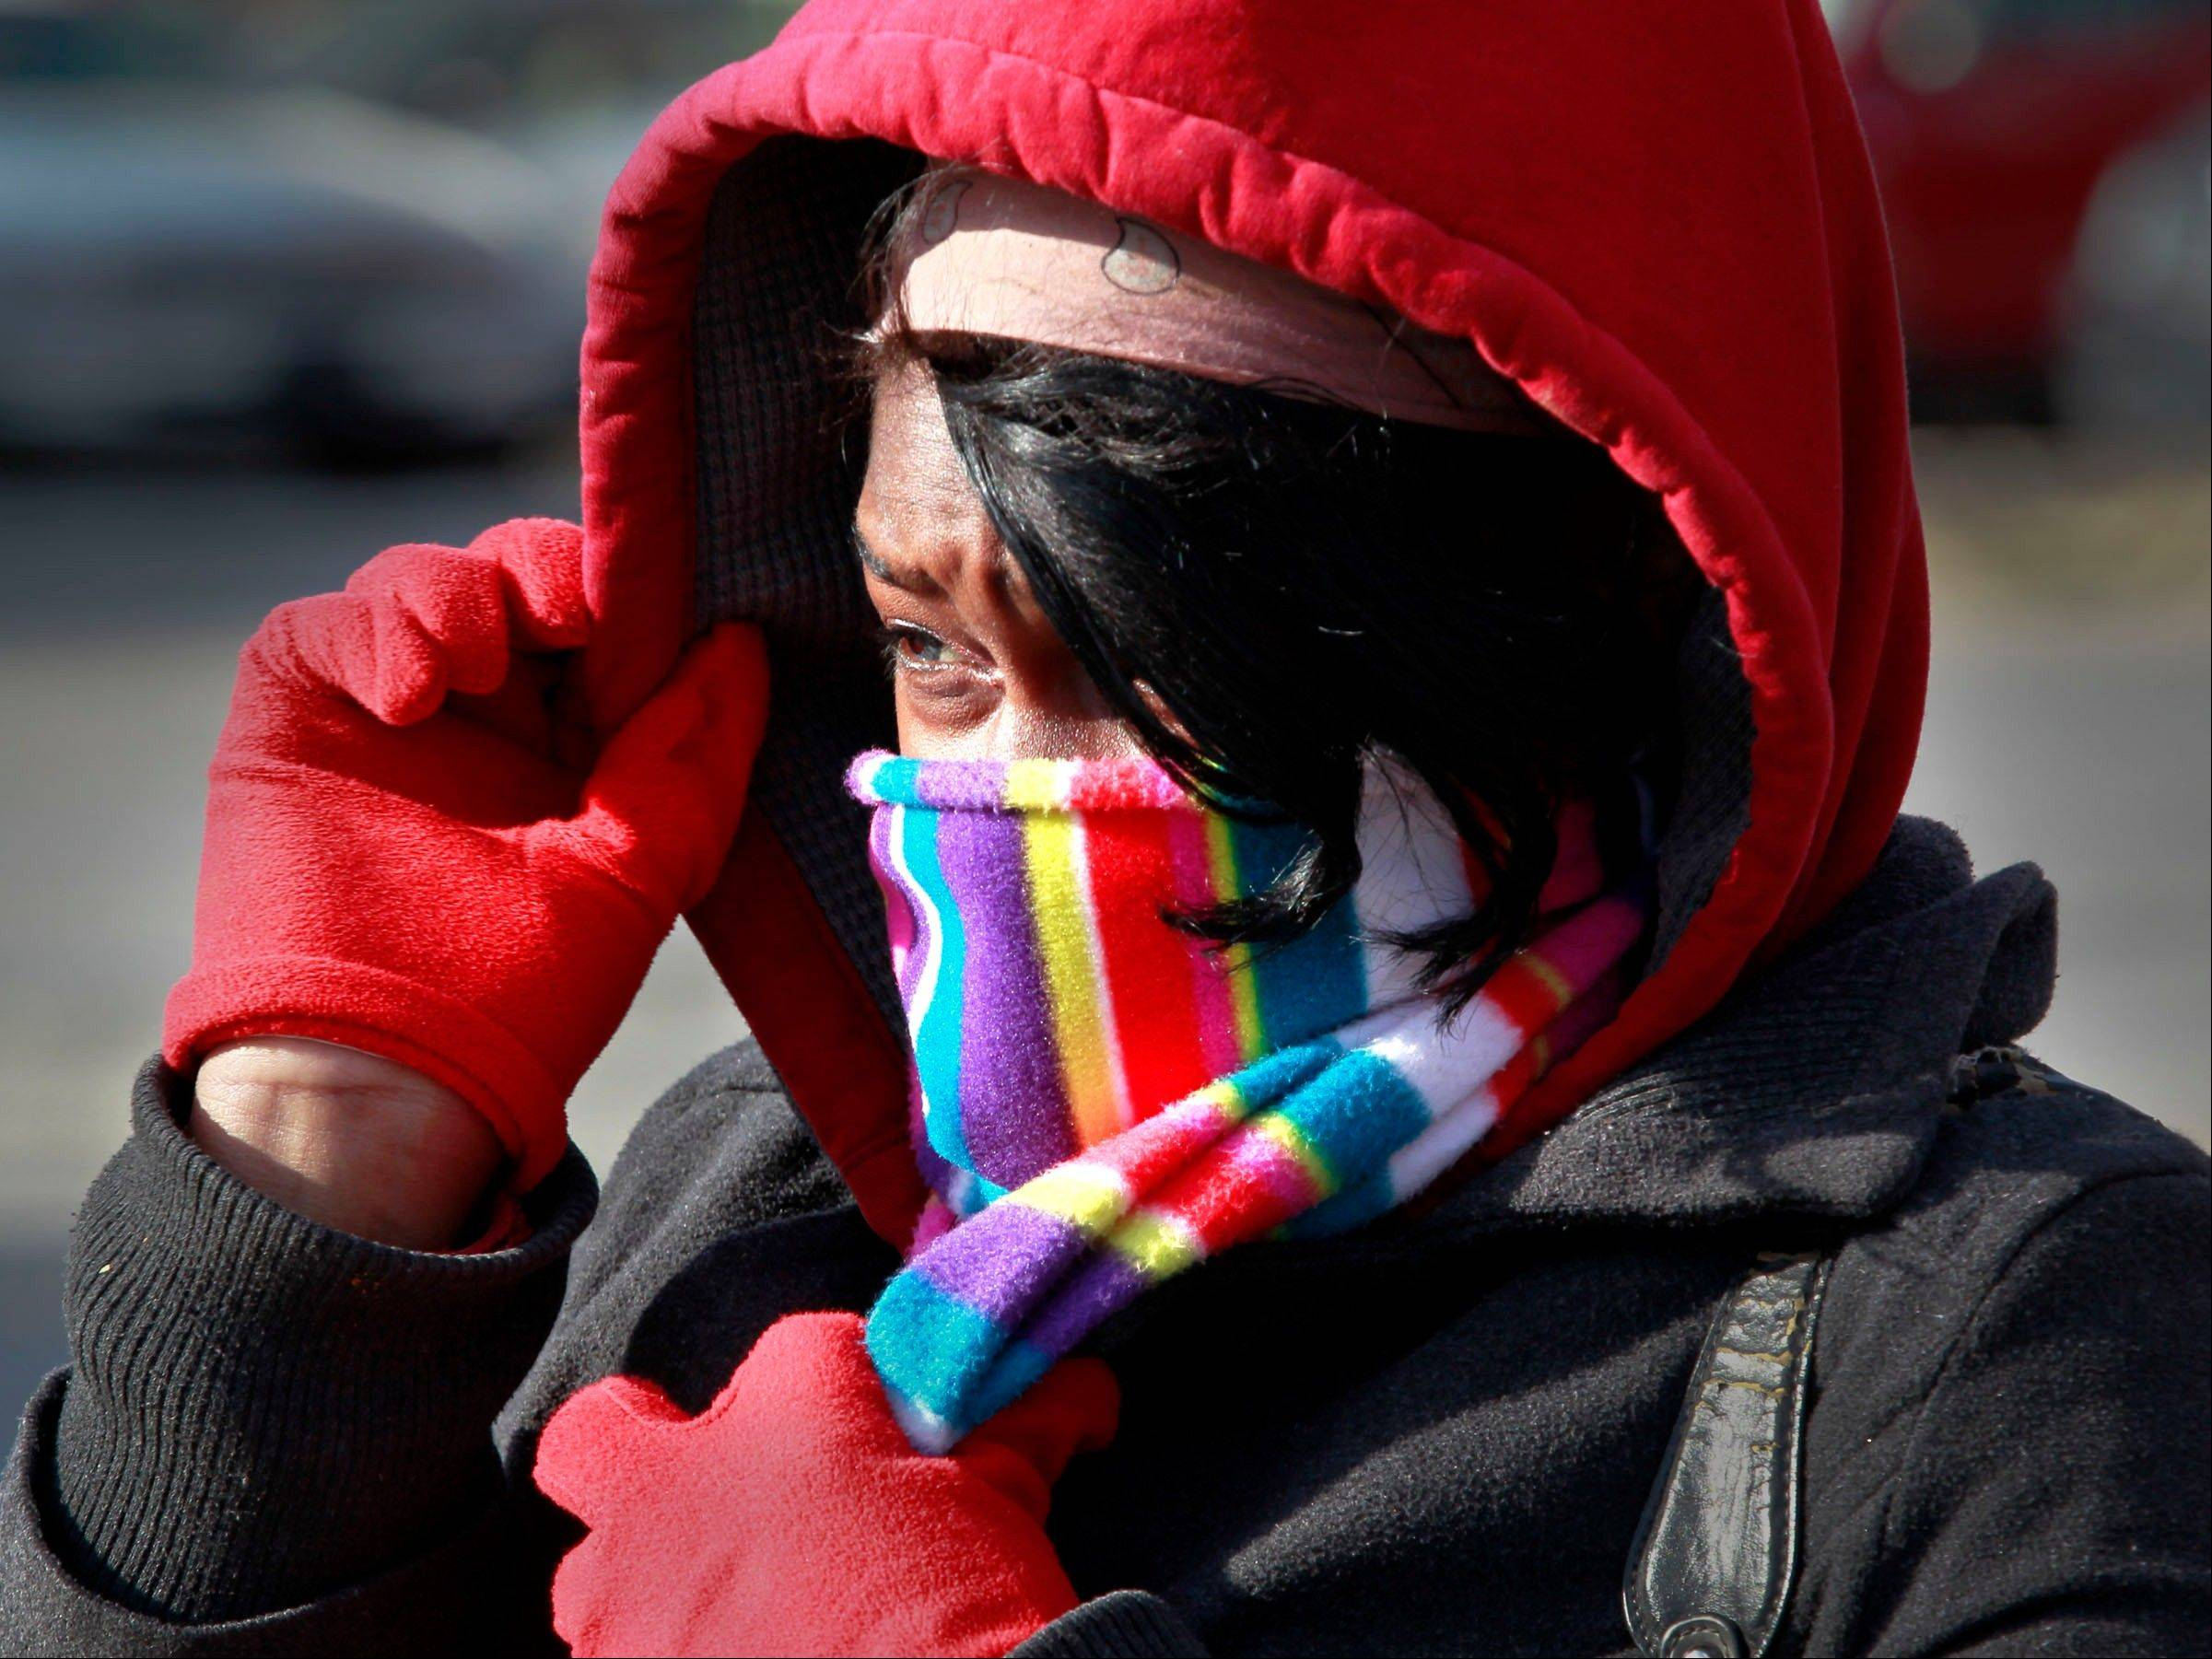 With temperatures plummeting, authorities are reminding Illinoisans to take precautions against biting cold. Chicago's Office of Emergency Management and Communications says people should make sure th